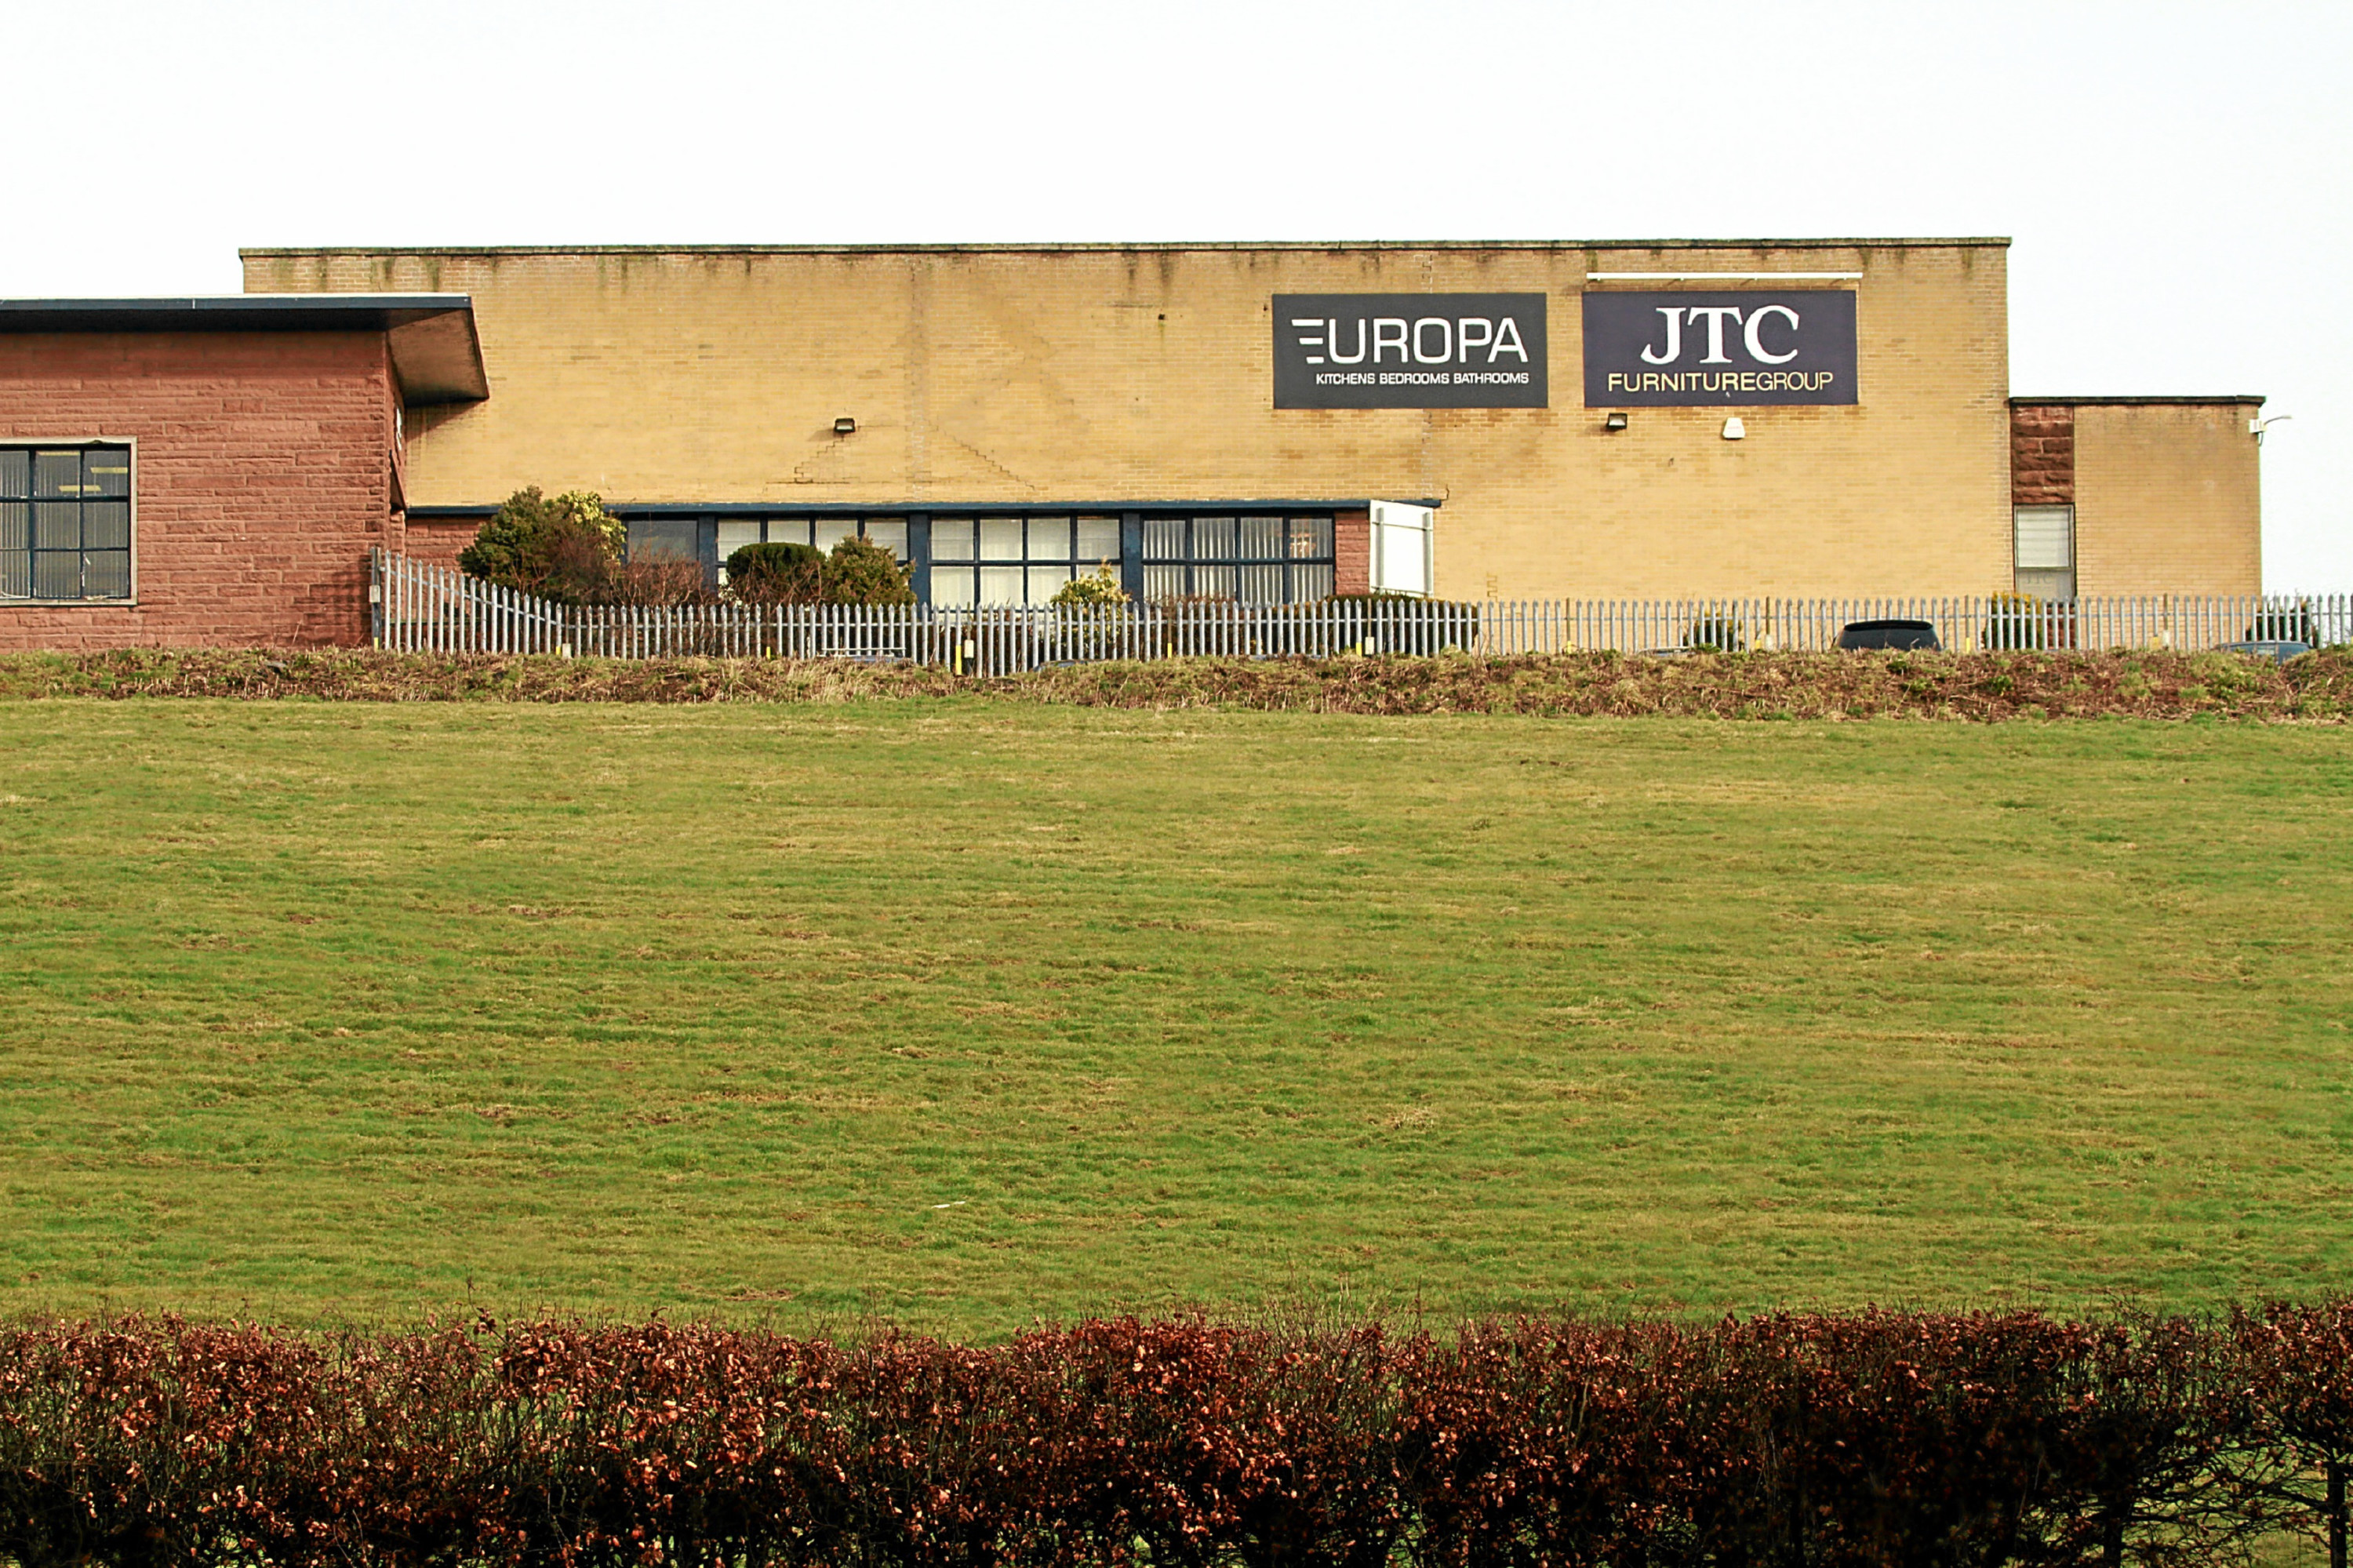 JTC Furniture's headquarters in the north-west of the city.